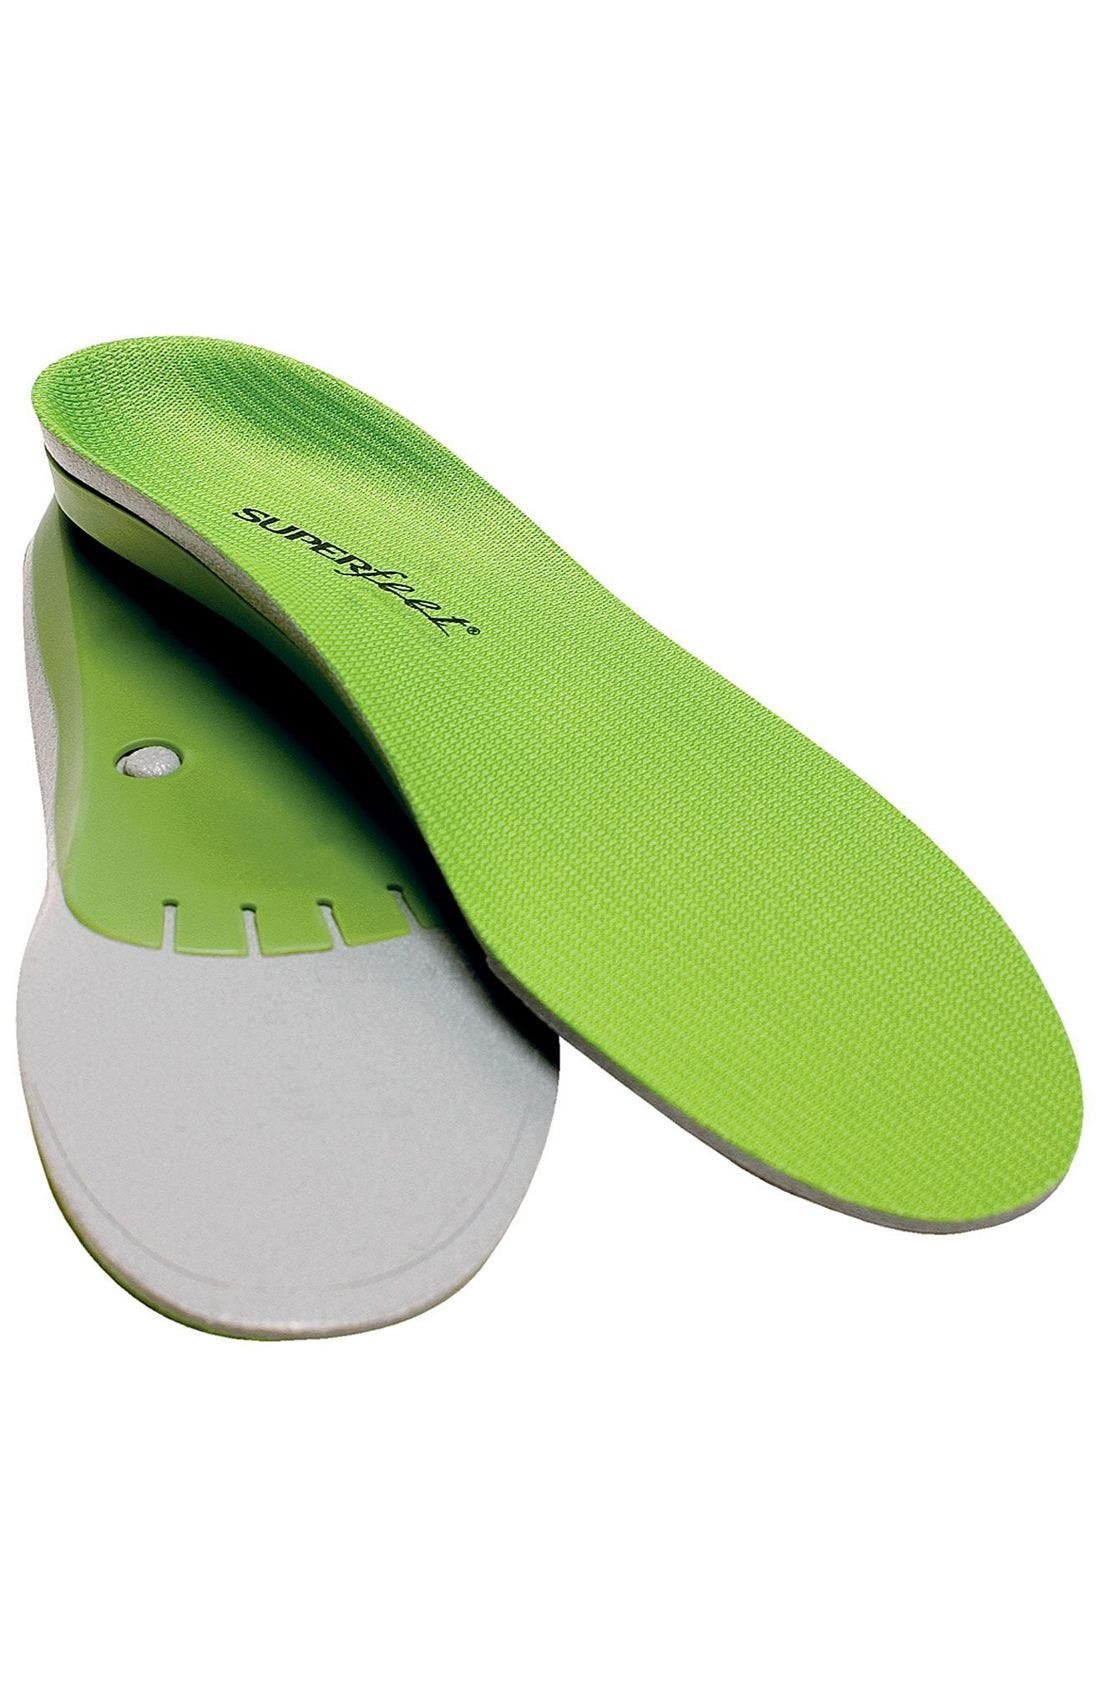 'Performance Green' Insoles,                         Main,                         color, Green